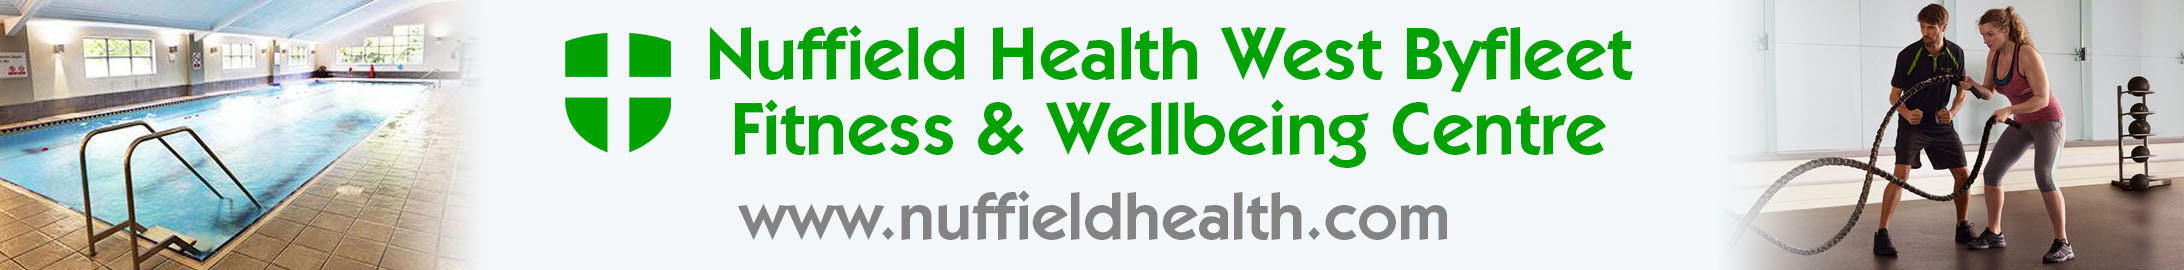 Nuffield Health West Byfleet Fitness & Wellbeing Centre